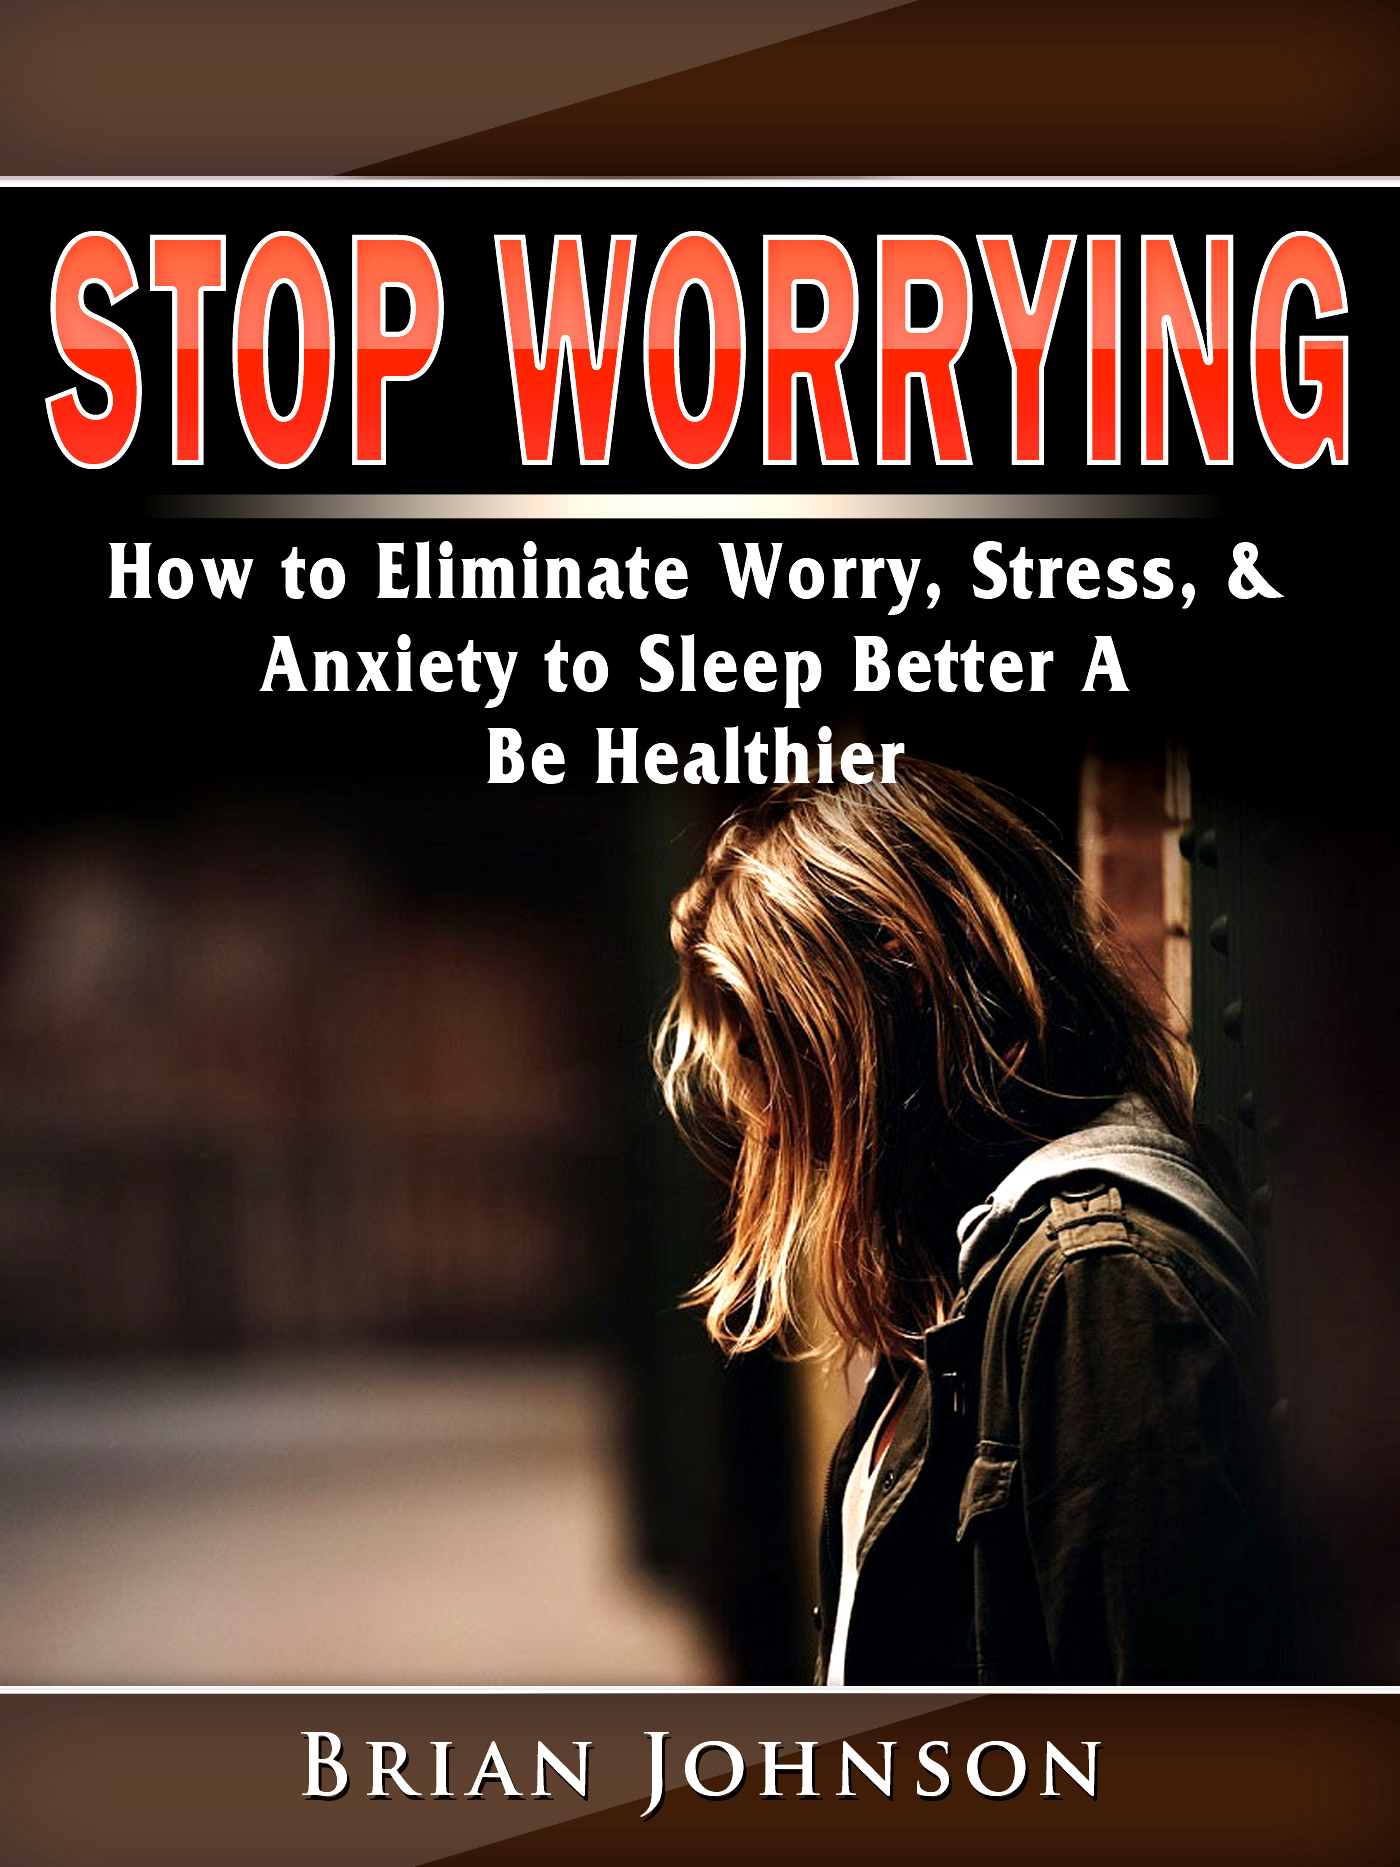 Stop worrying how to eliminate worry, stress, & anxiety to sleep better a be healthier